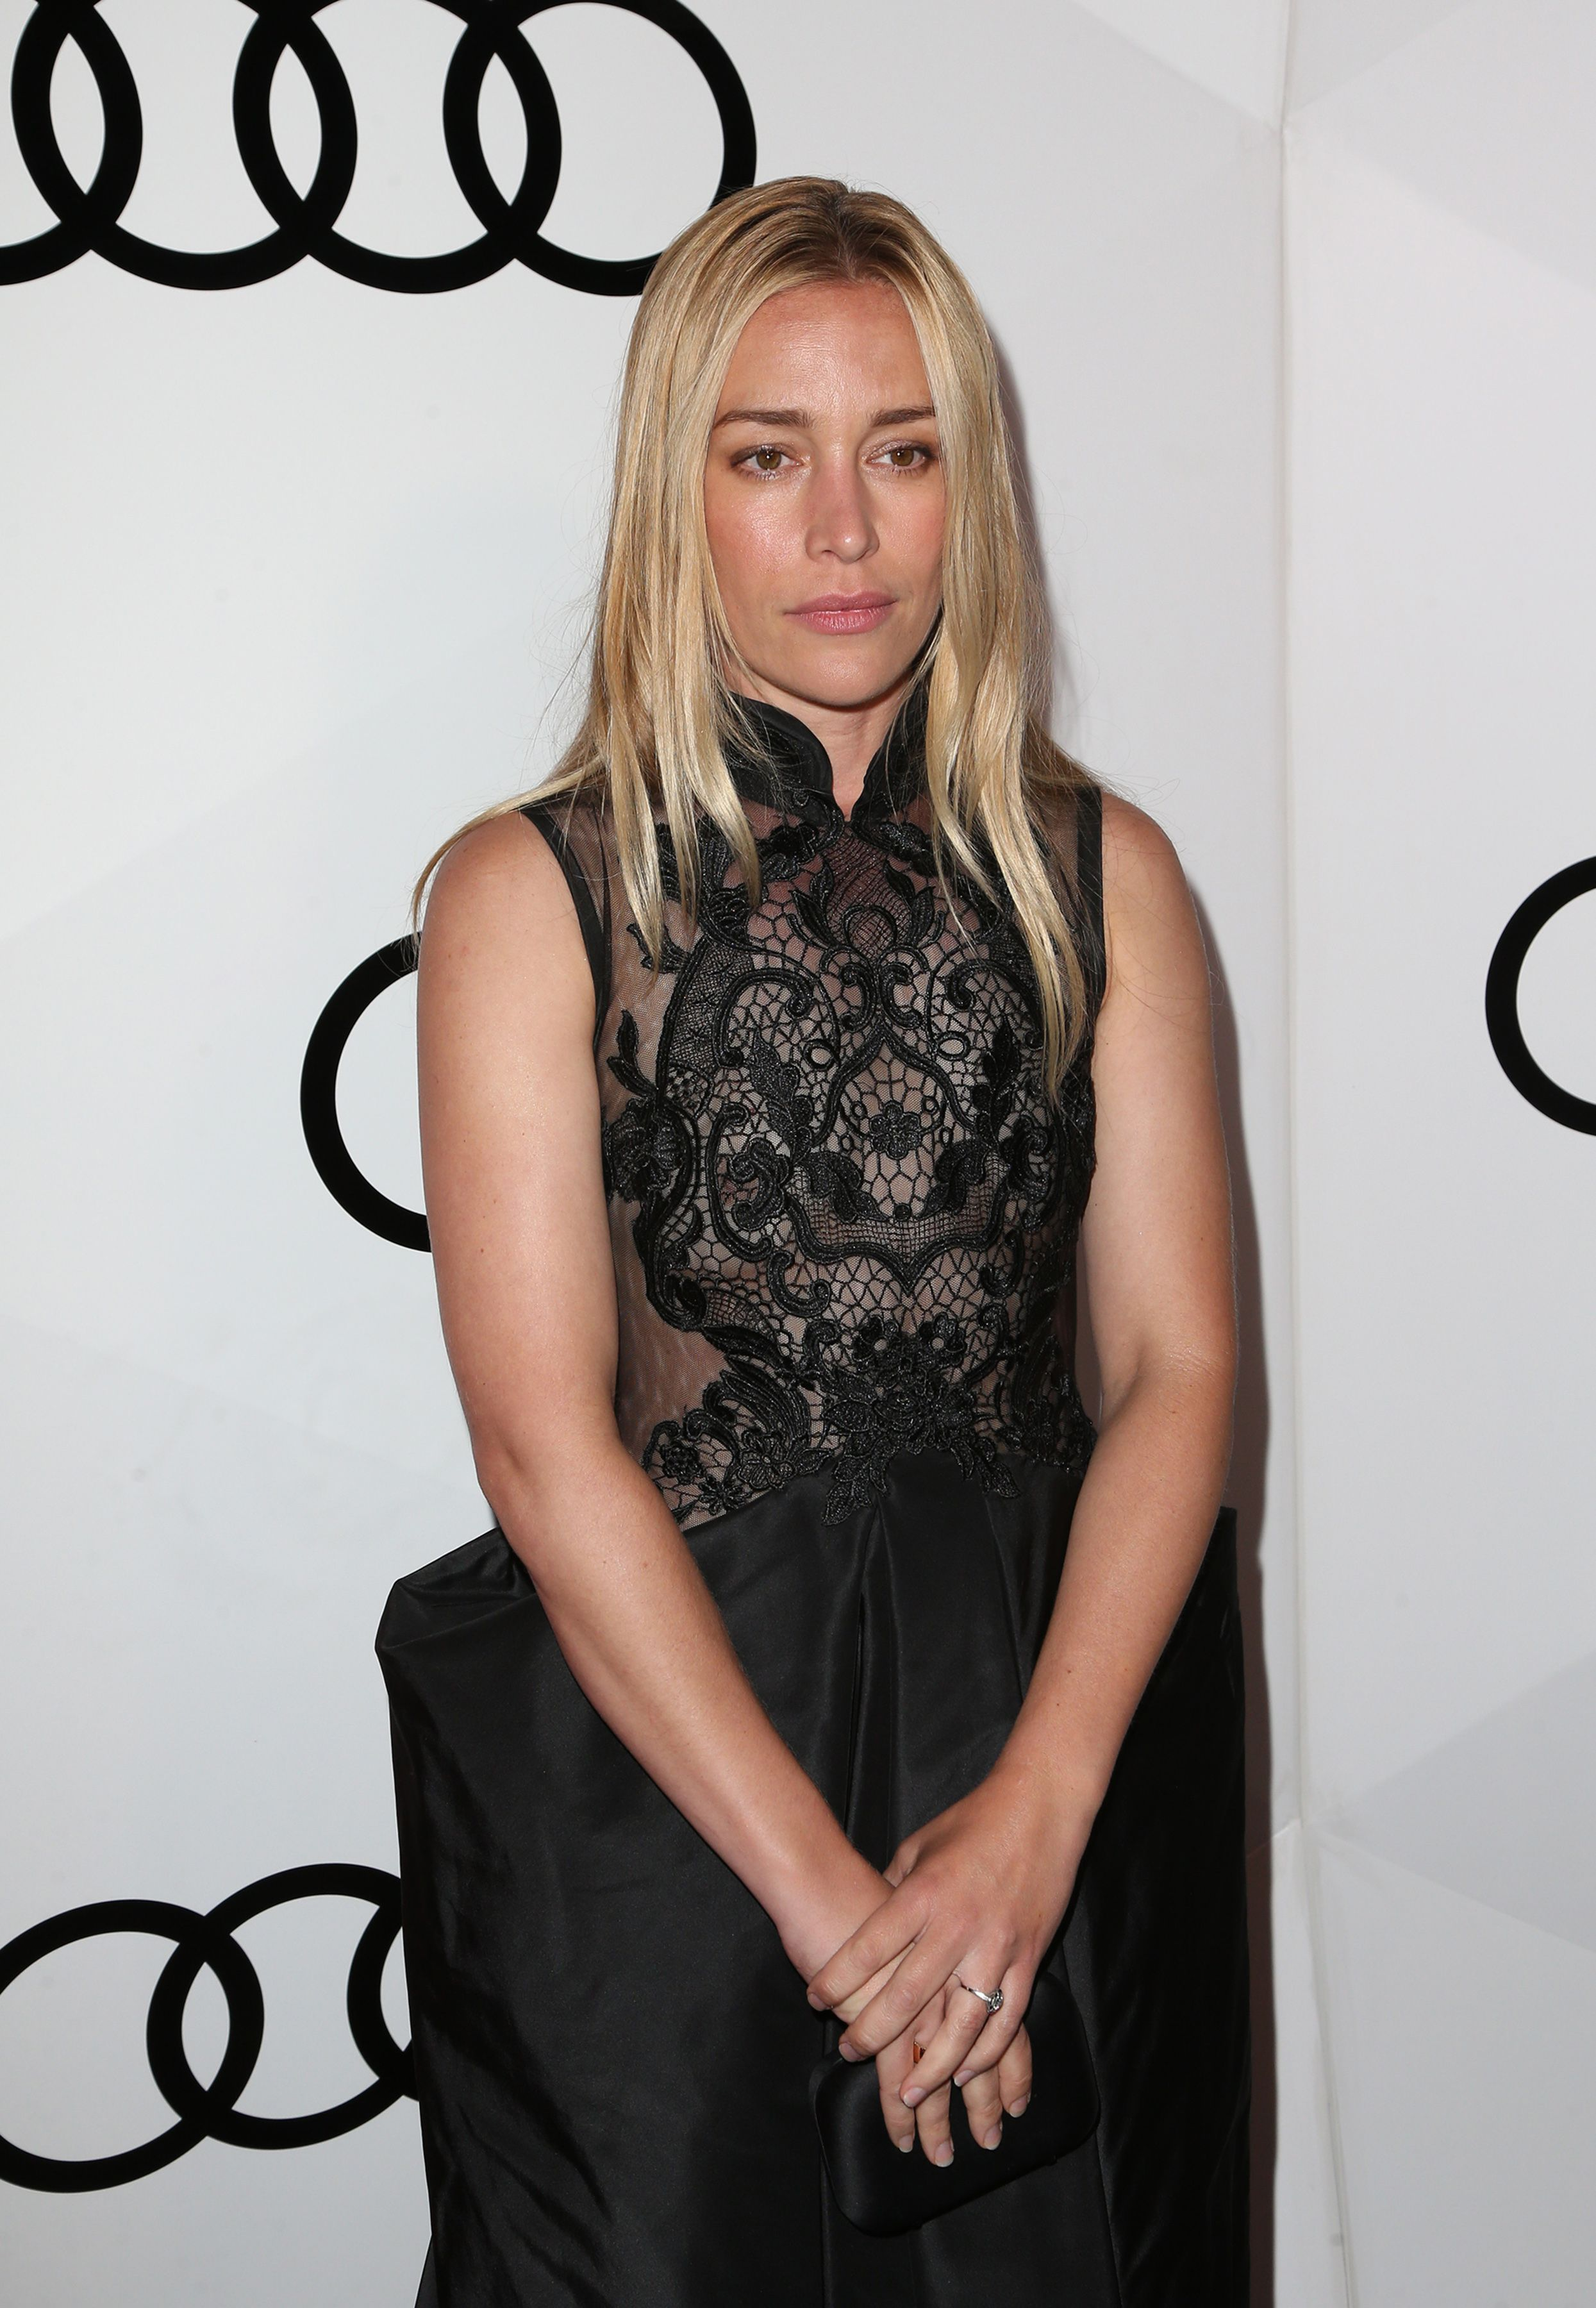 UGH! Movie Actress Piper Perabo Fappening • Page 3 • Fappening Sauce